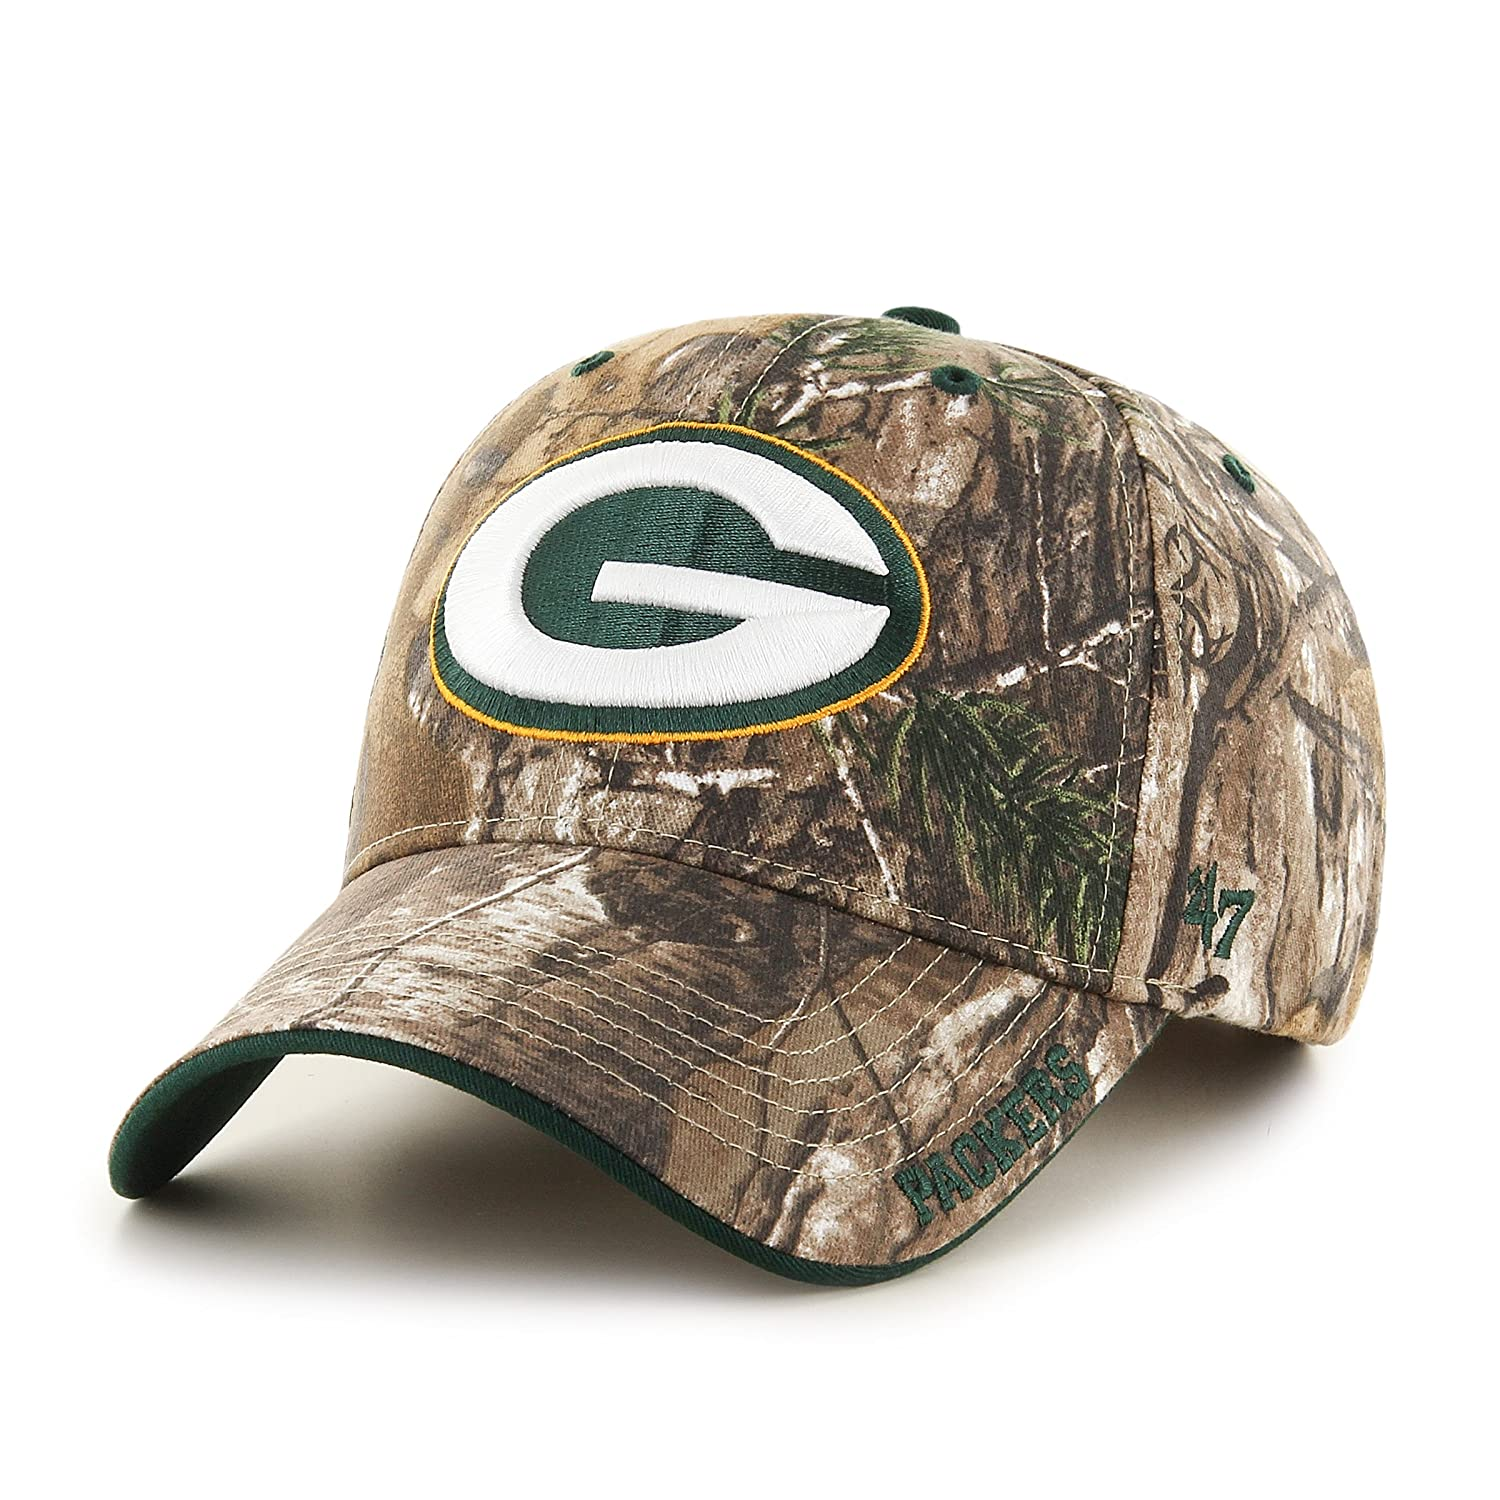 Buy NFL Green Bay Packers  47 Frost MVP Camo Adjustable Hat 588cbc085